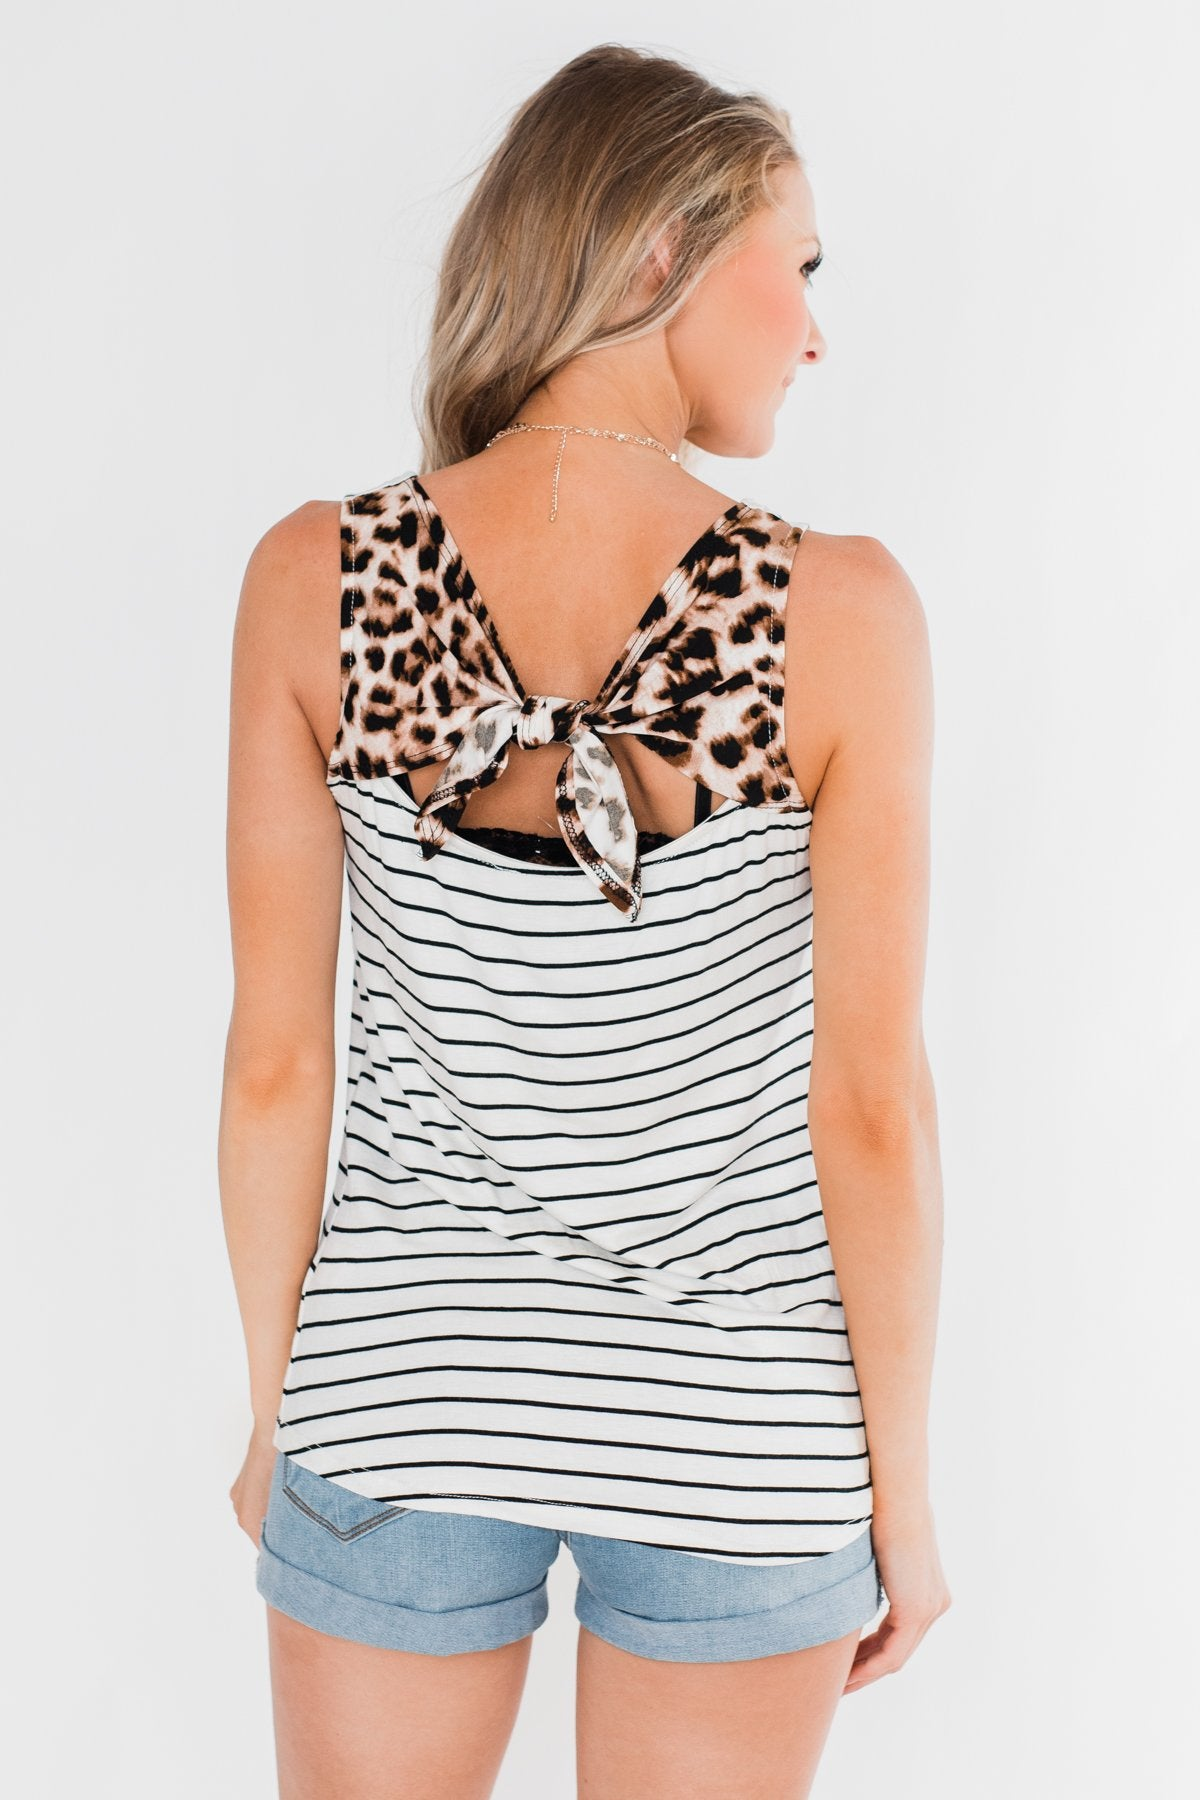 Tied Up In Leopard Bow Tank Top- Ivory